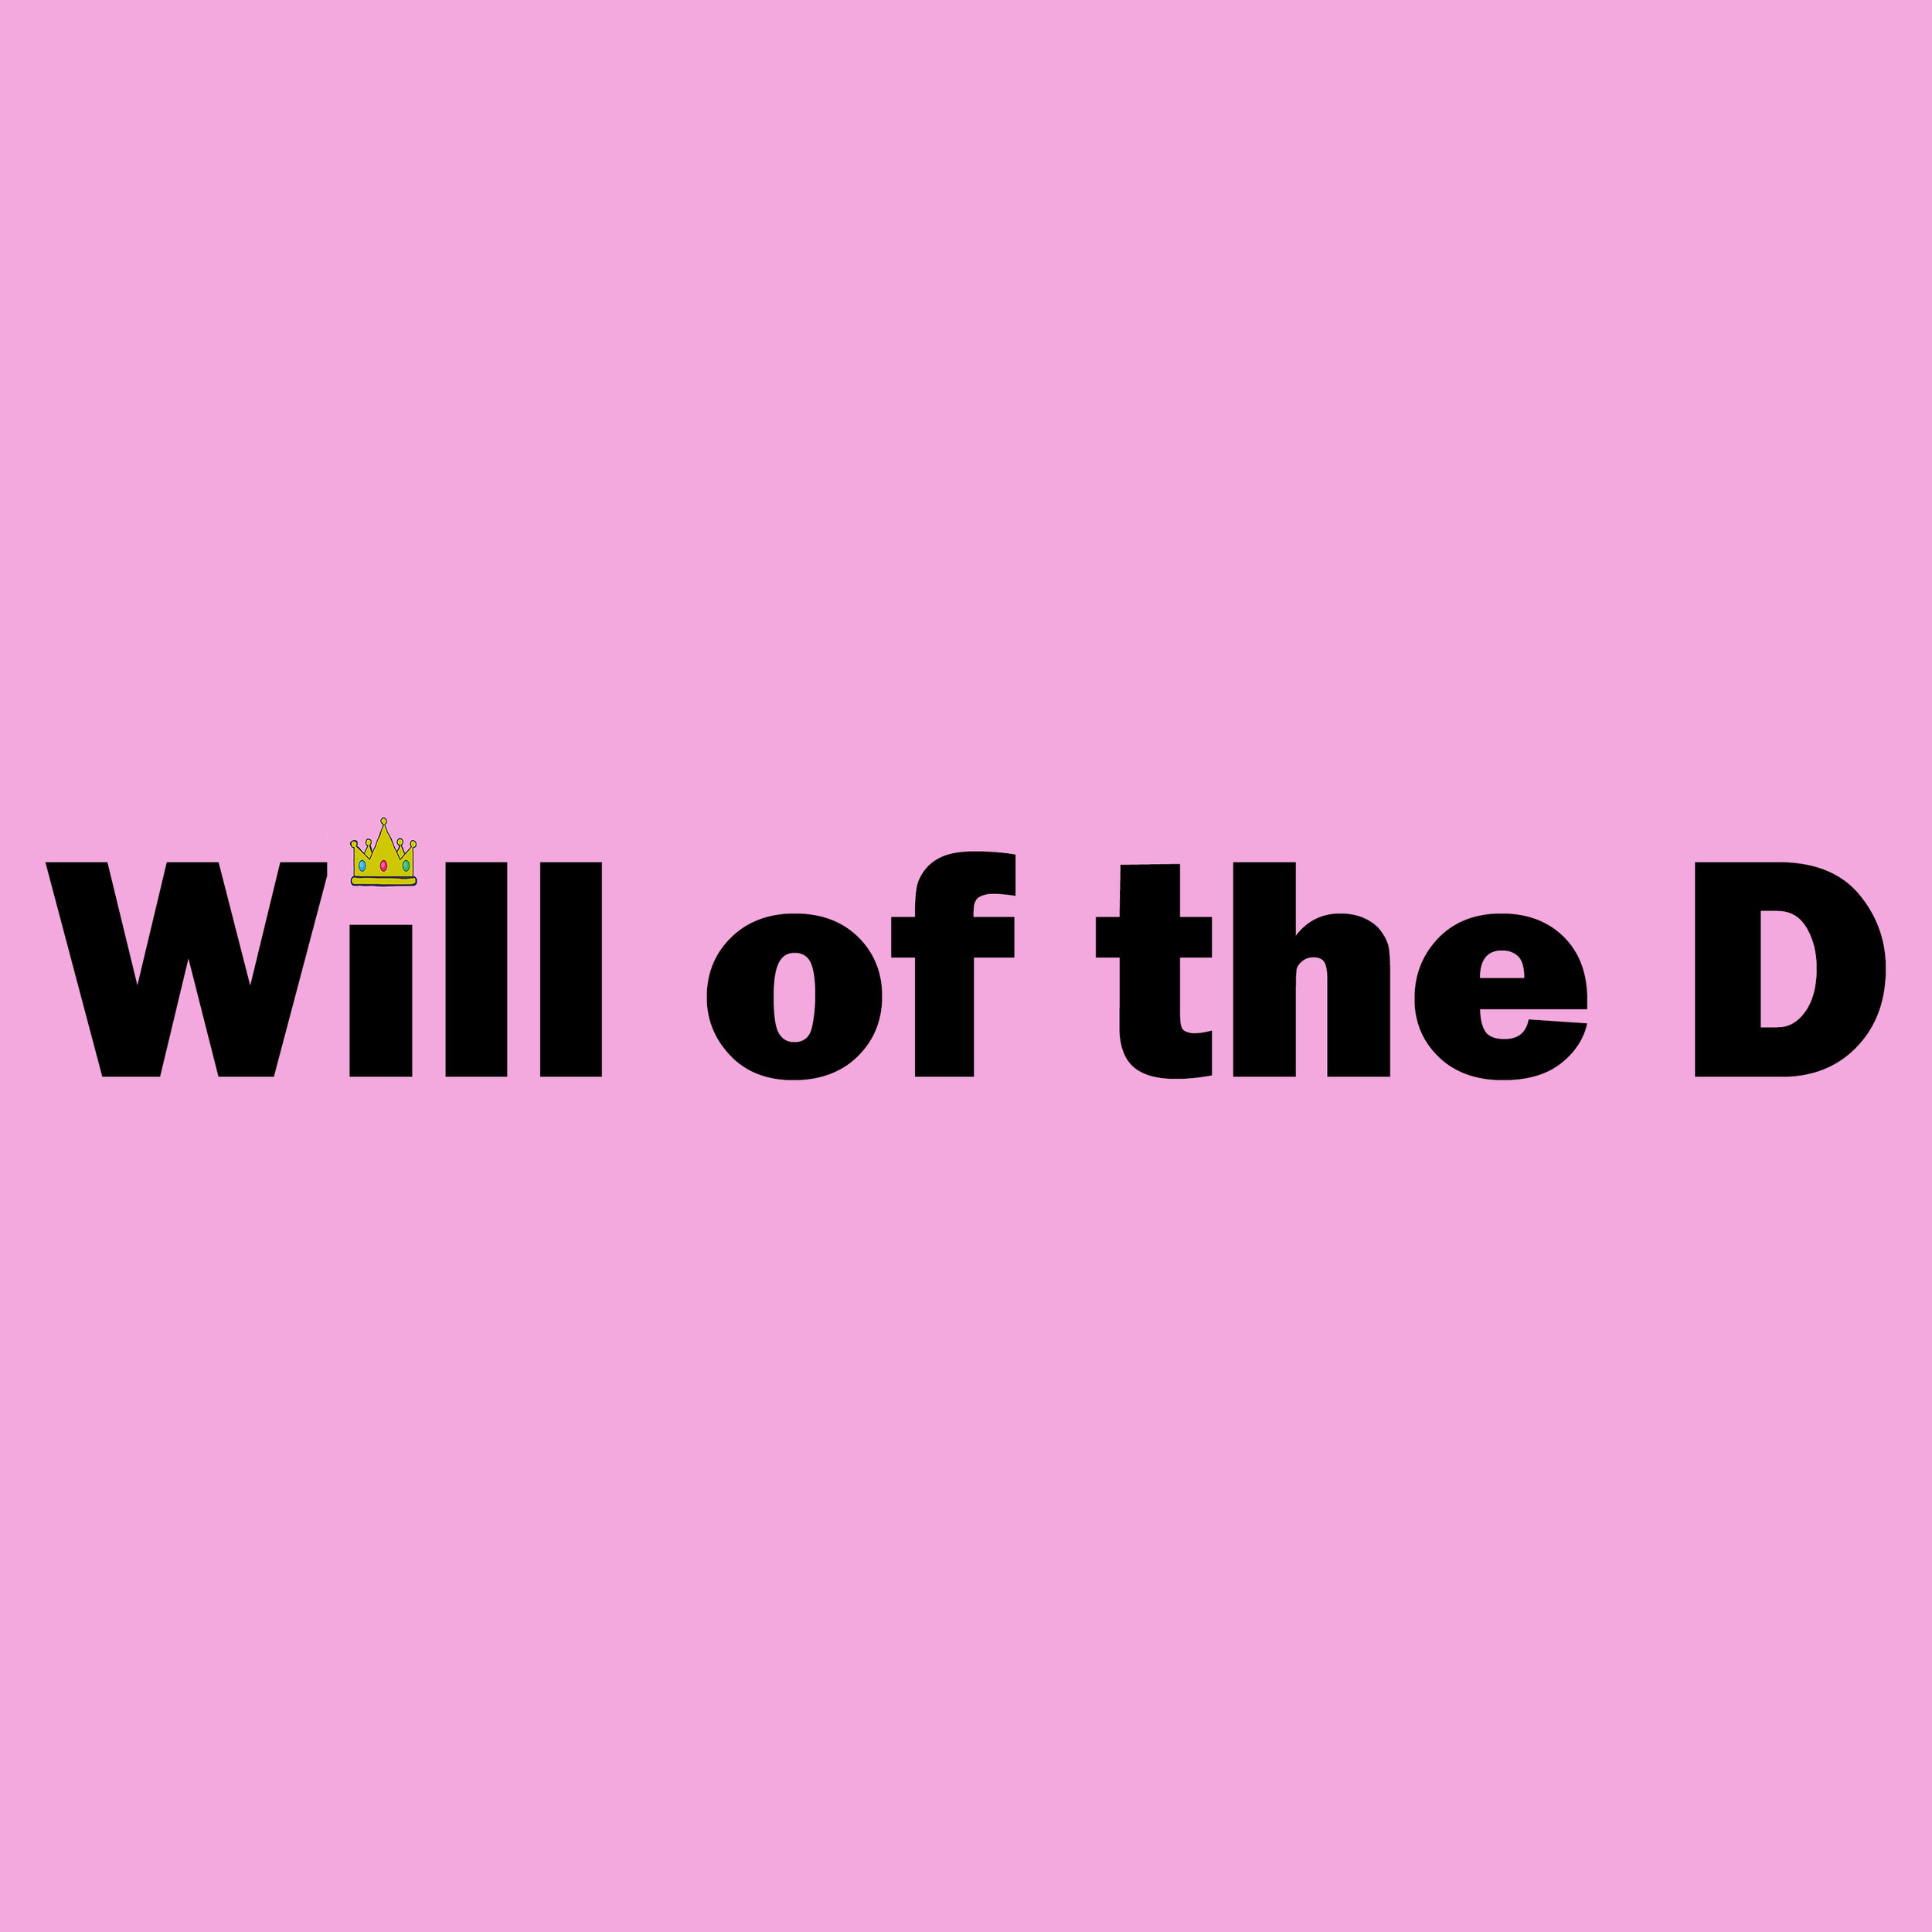 Will of the D  (base pink).jpg